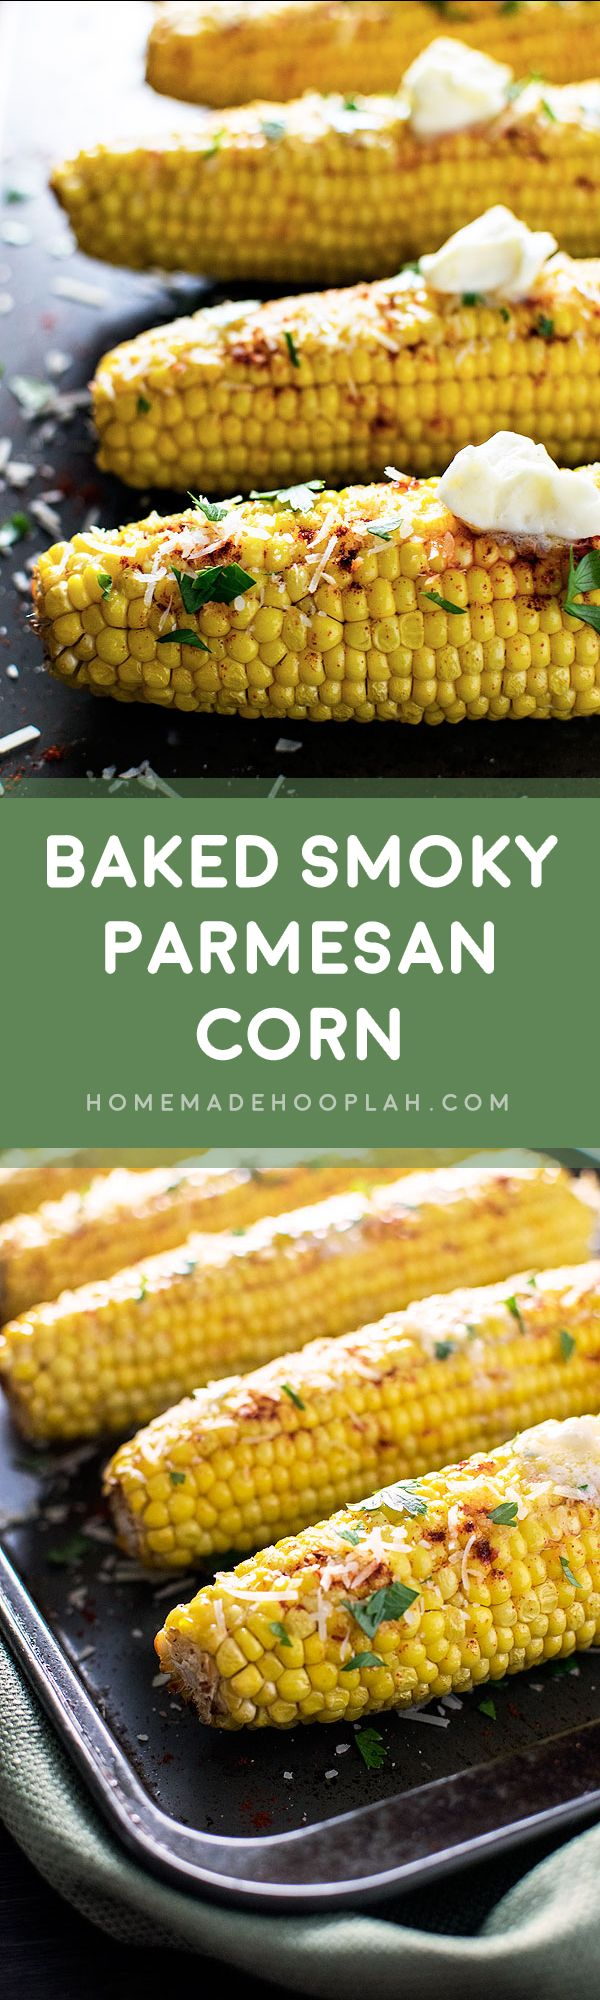 Baked Smoky Parmesan Corn! Baked corn on the cob with garlic butter ...